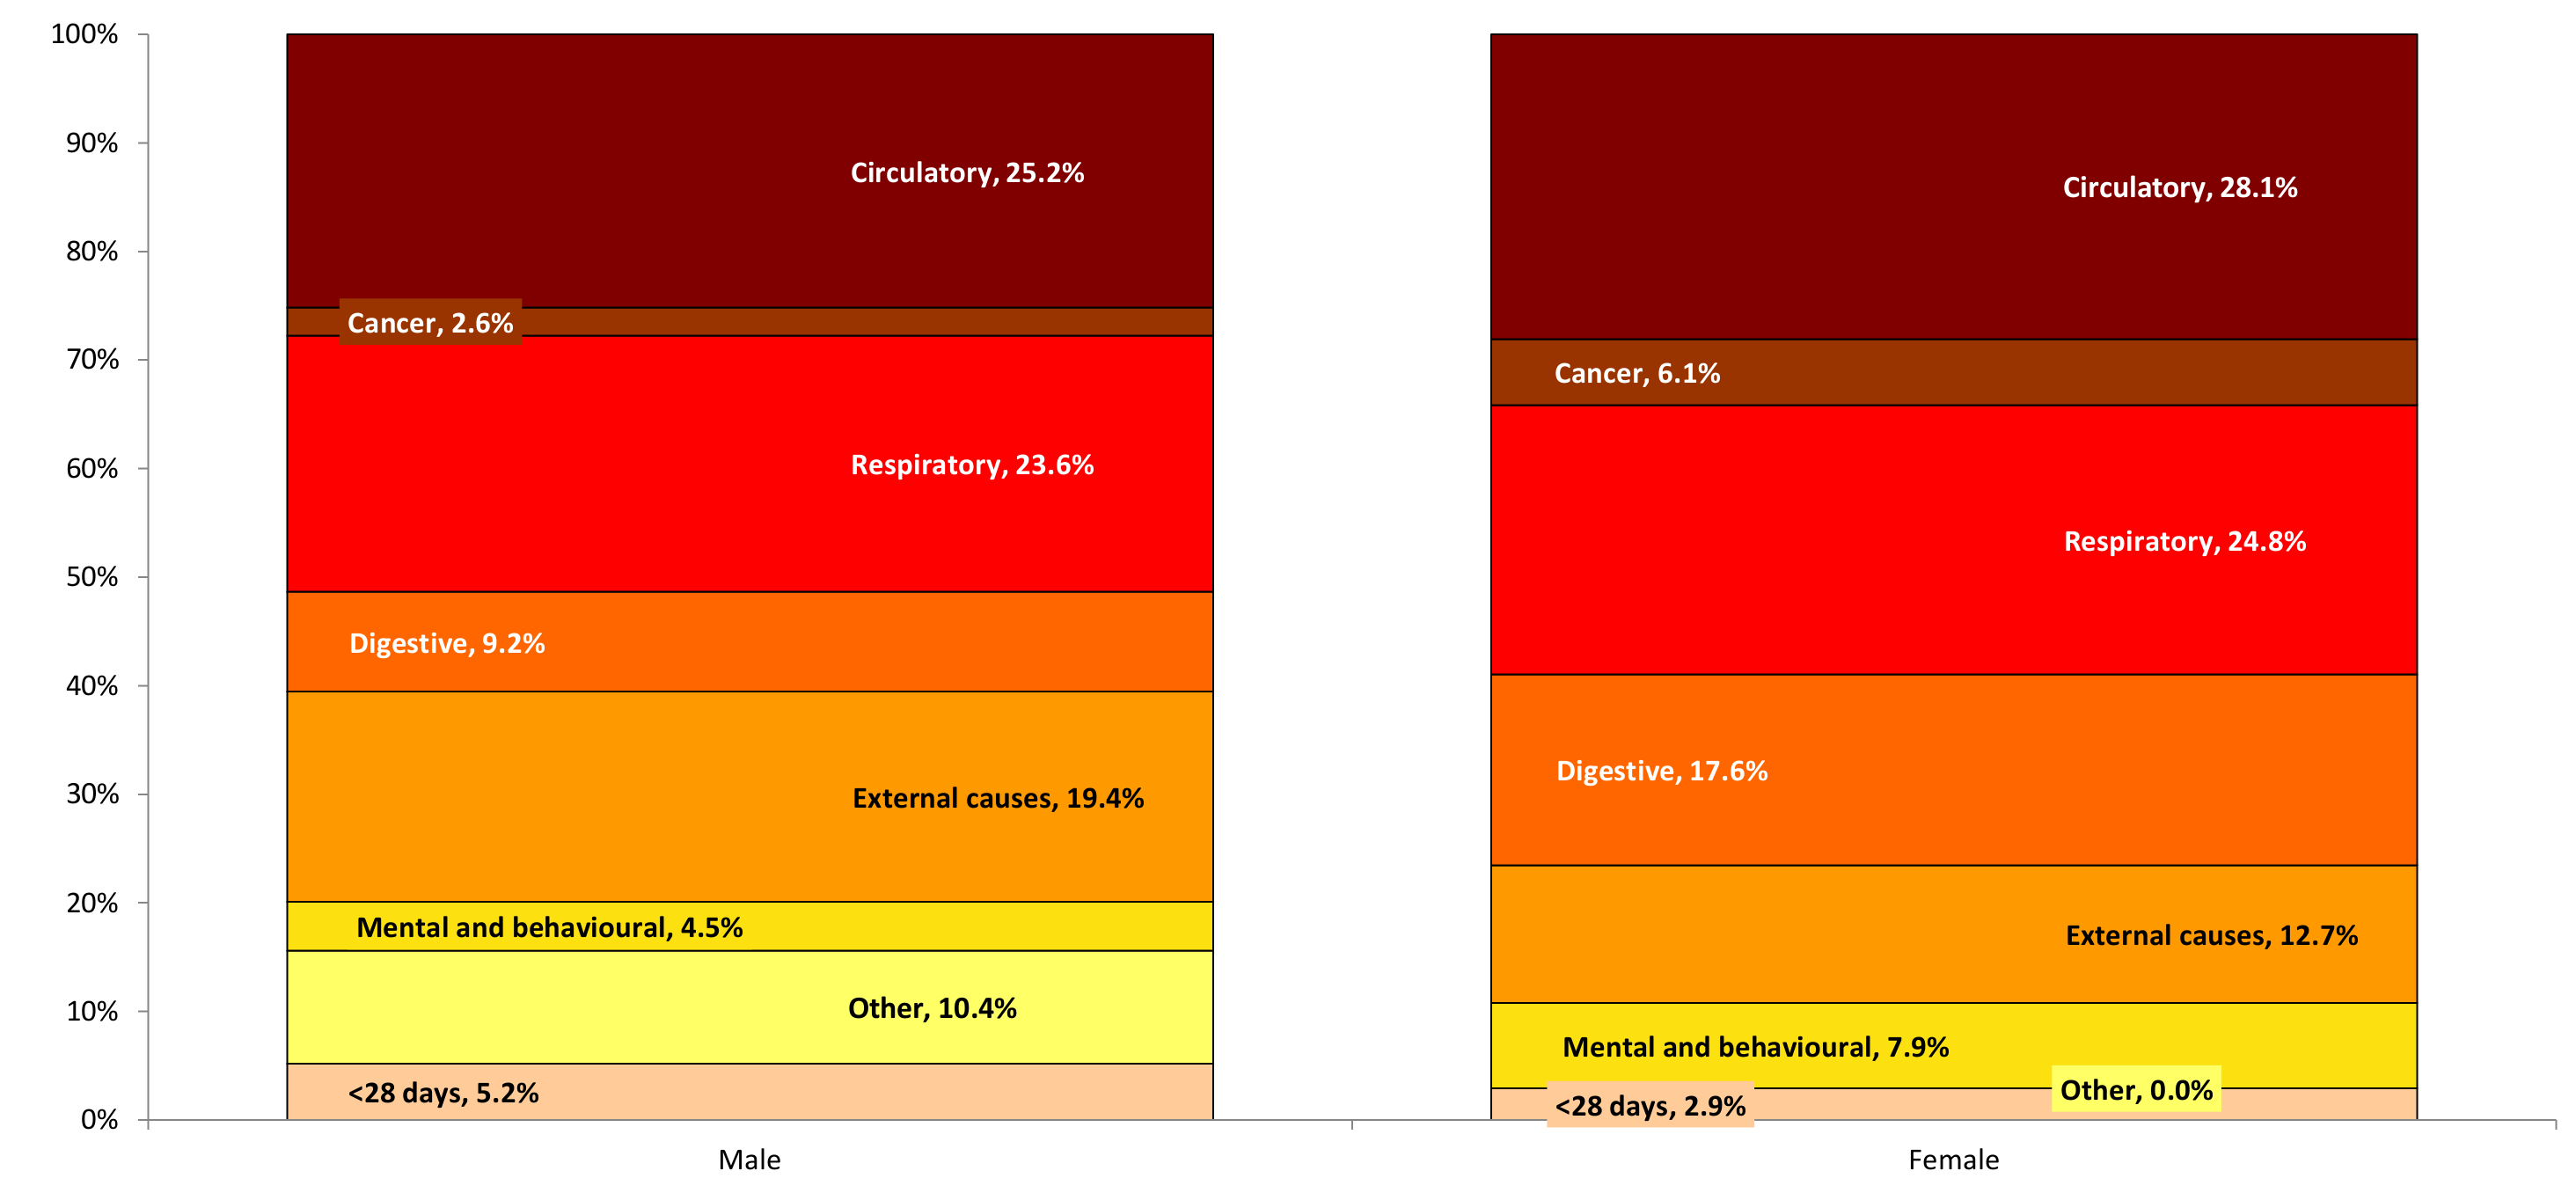 Figure 2: Life expectancy gap between the most and least deprived quintiles in Medway, by broad cause of death